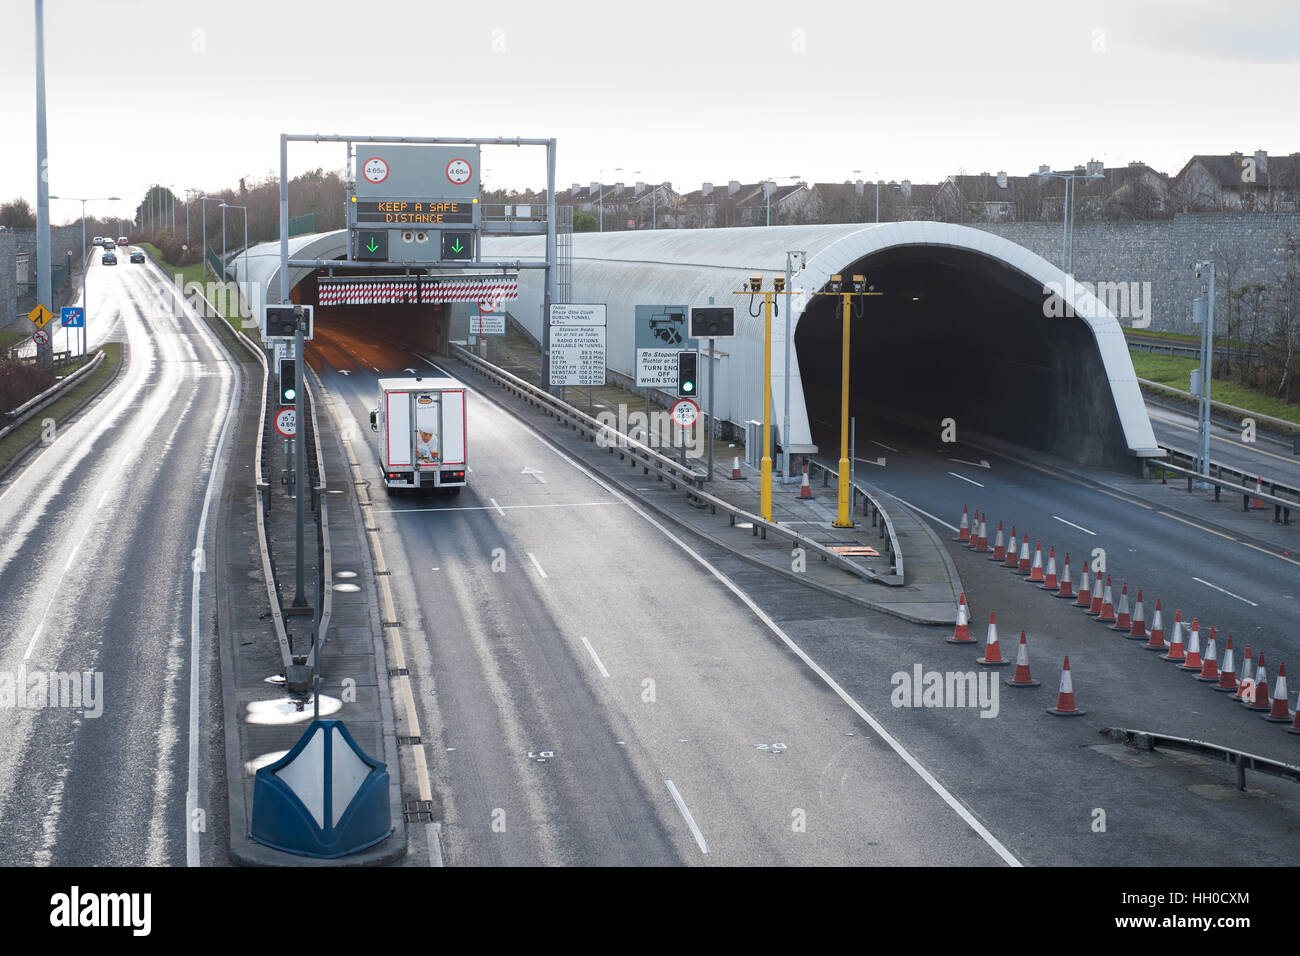 Dublin Port Tunnel, Dublin, Ireland - Stock Image